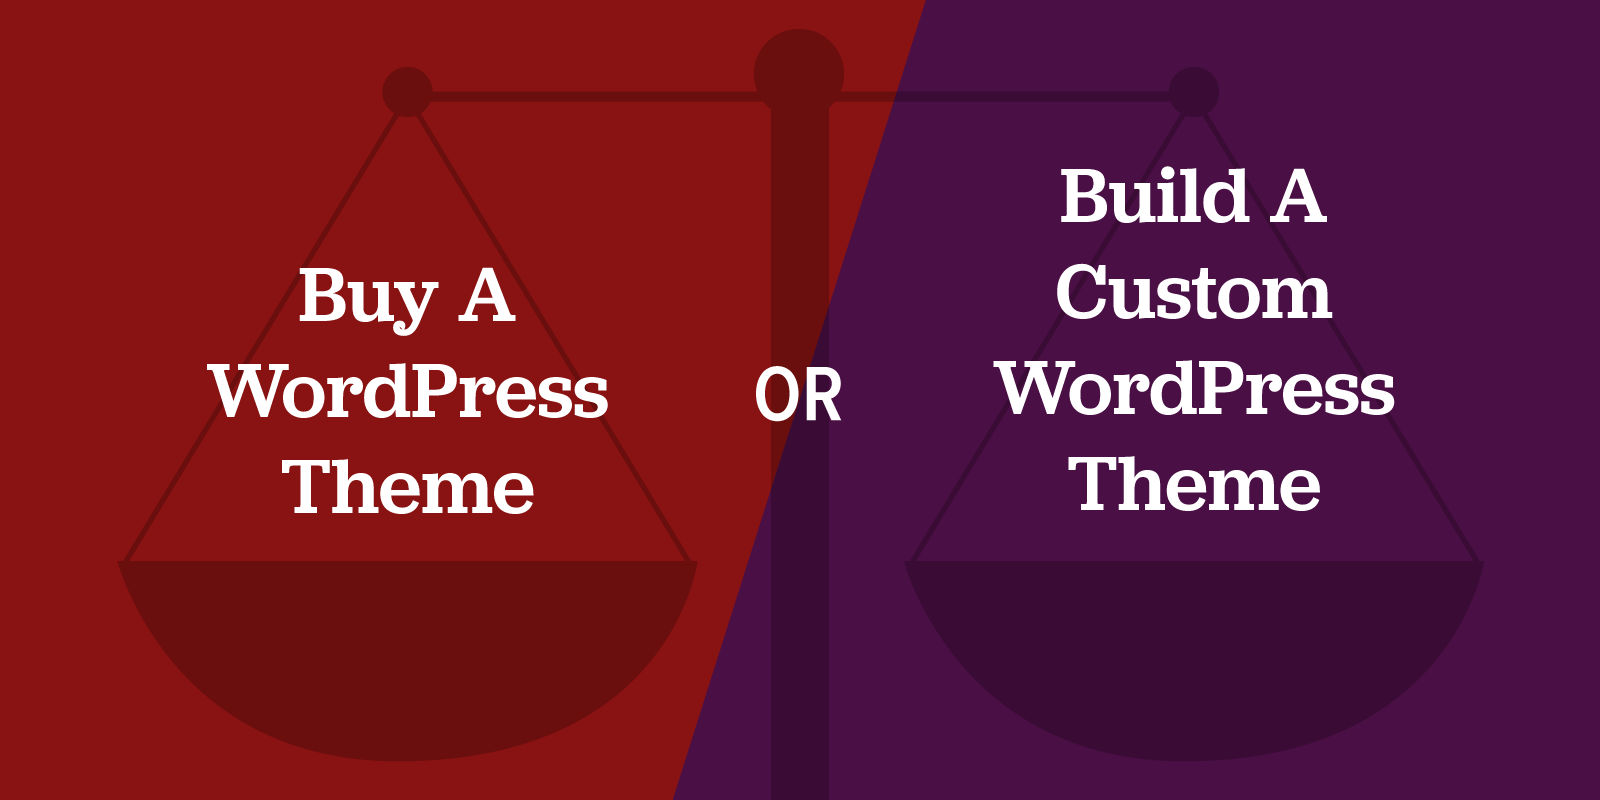 Shoud you buy a WordPress theme or build a custom WordPress theme? There are more options than you think...